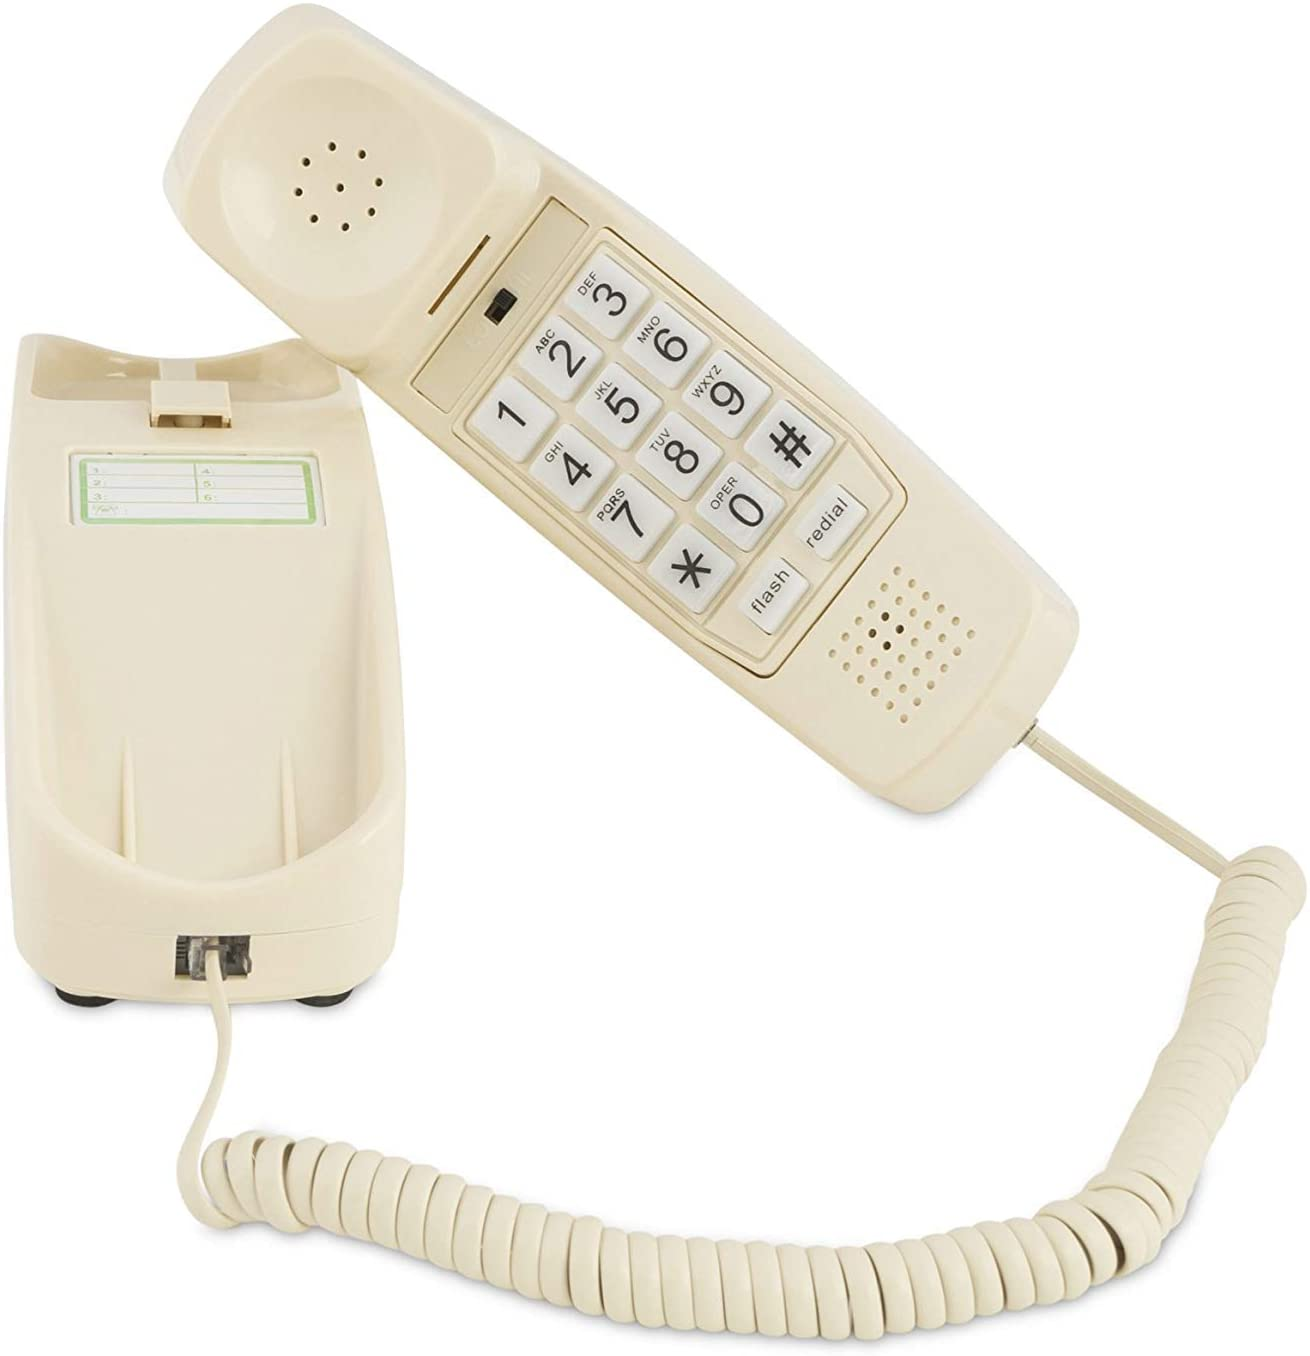 Trimline Corded Phone - Senior Landline Phones for Home – Home Phones for Seniors and the Hearing and Vision Impaired, Extra Loud Ringer, Large Backlit Keypad and Voice Amplification Wall Mount Ready!